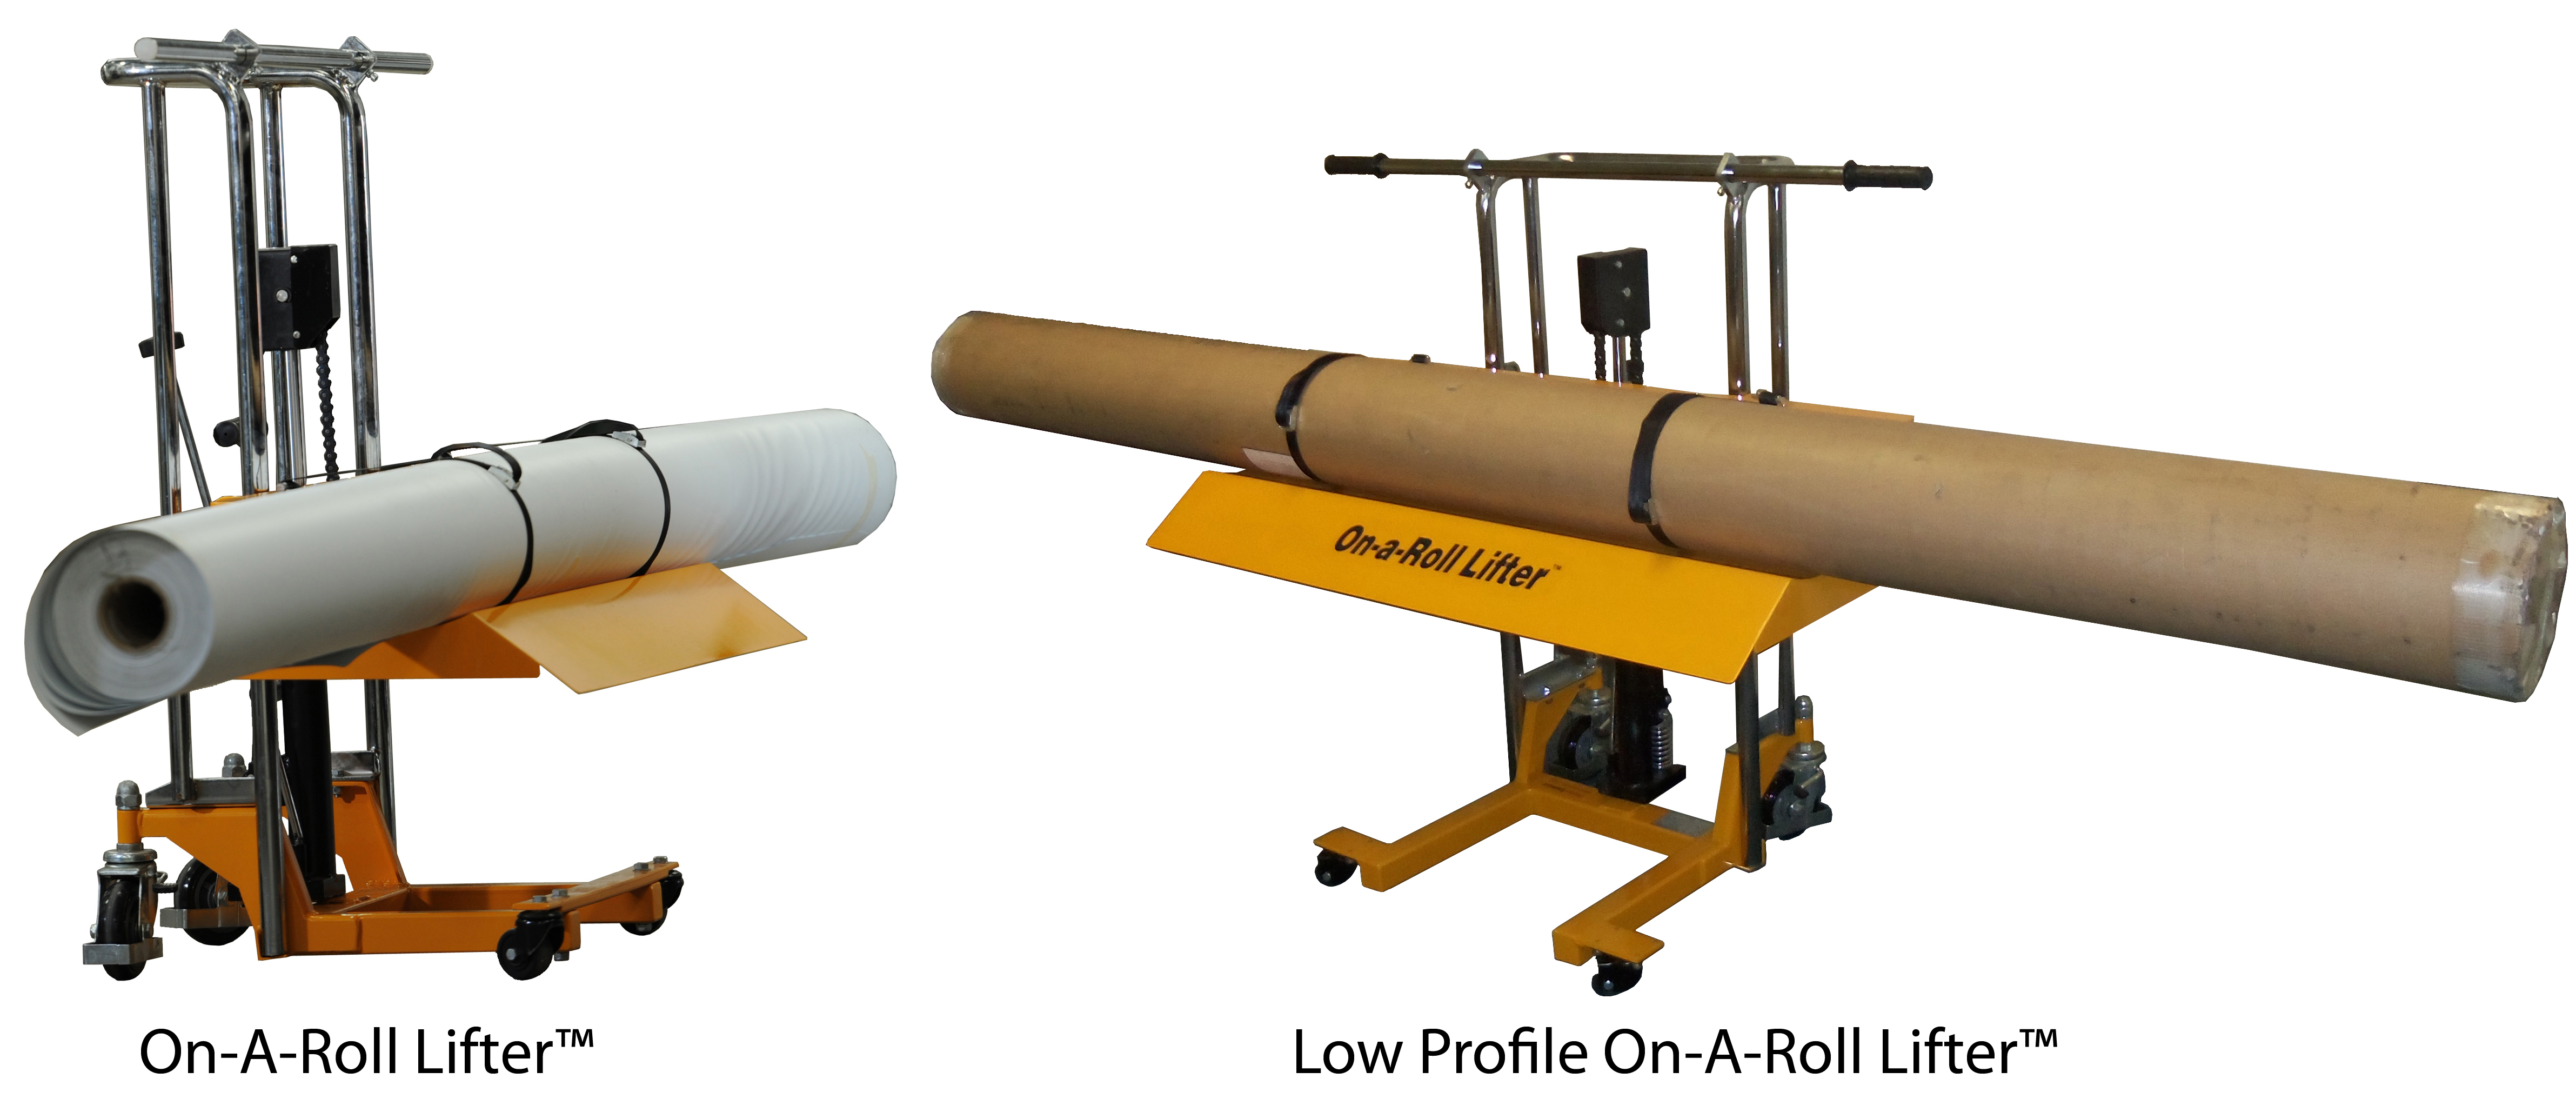 on-a-roll-lifter-and-low-profile-lifter-snellingfamily-s-conflicted-copy-2014-07-02-.jpg